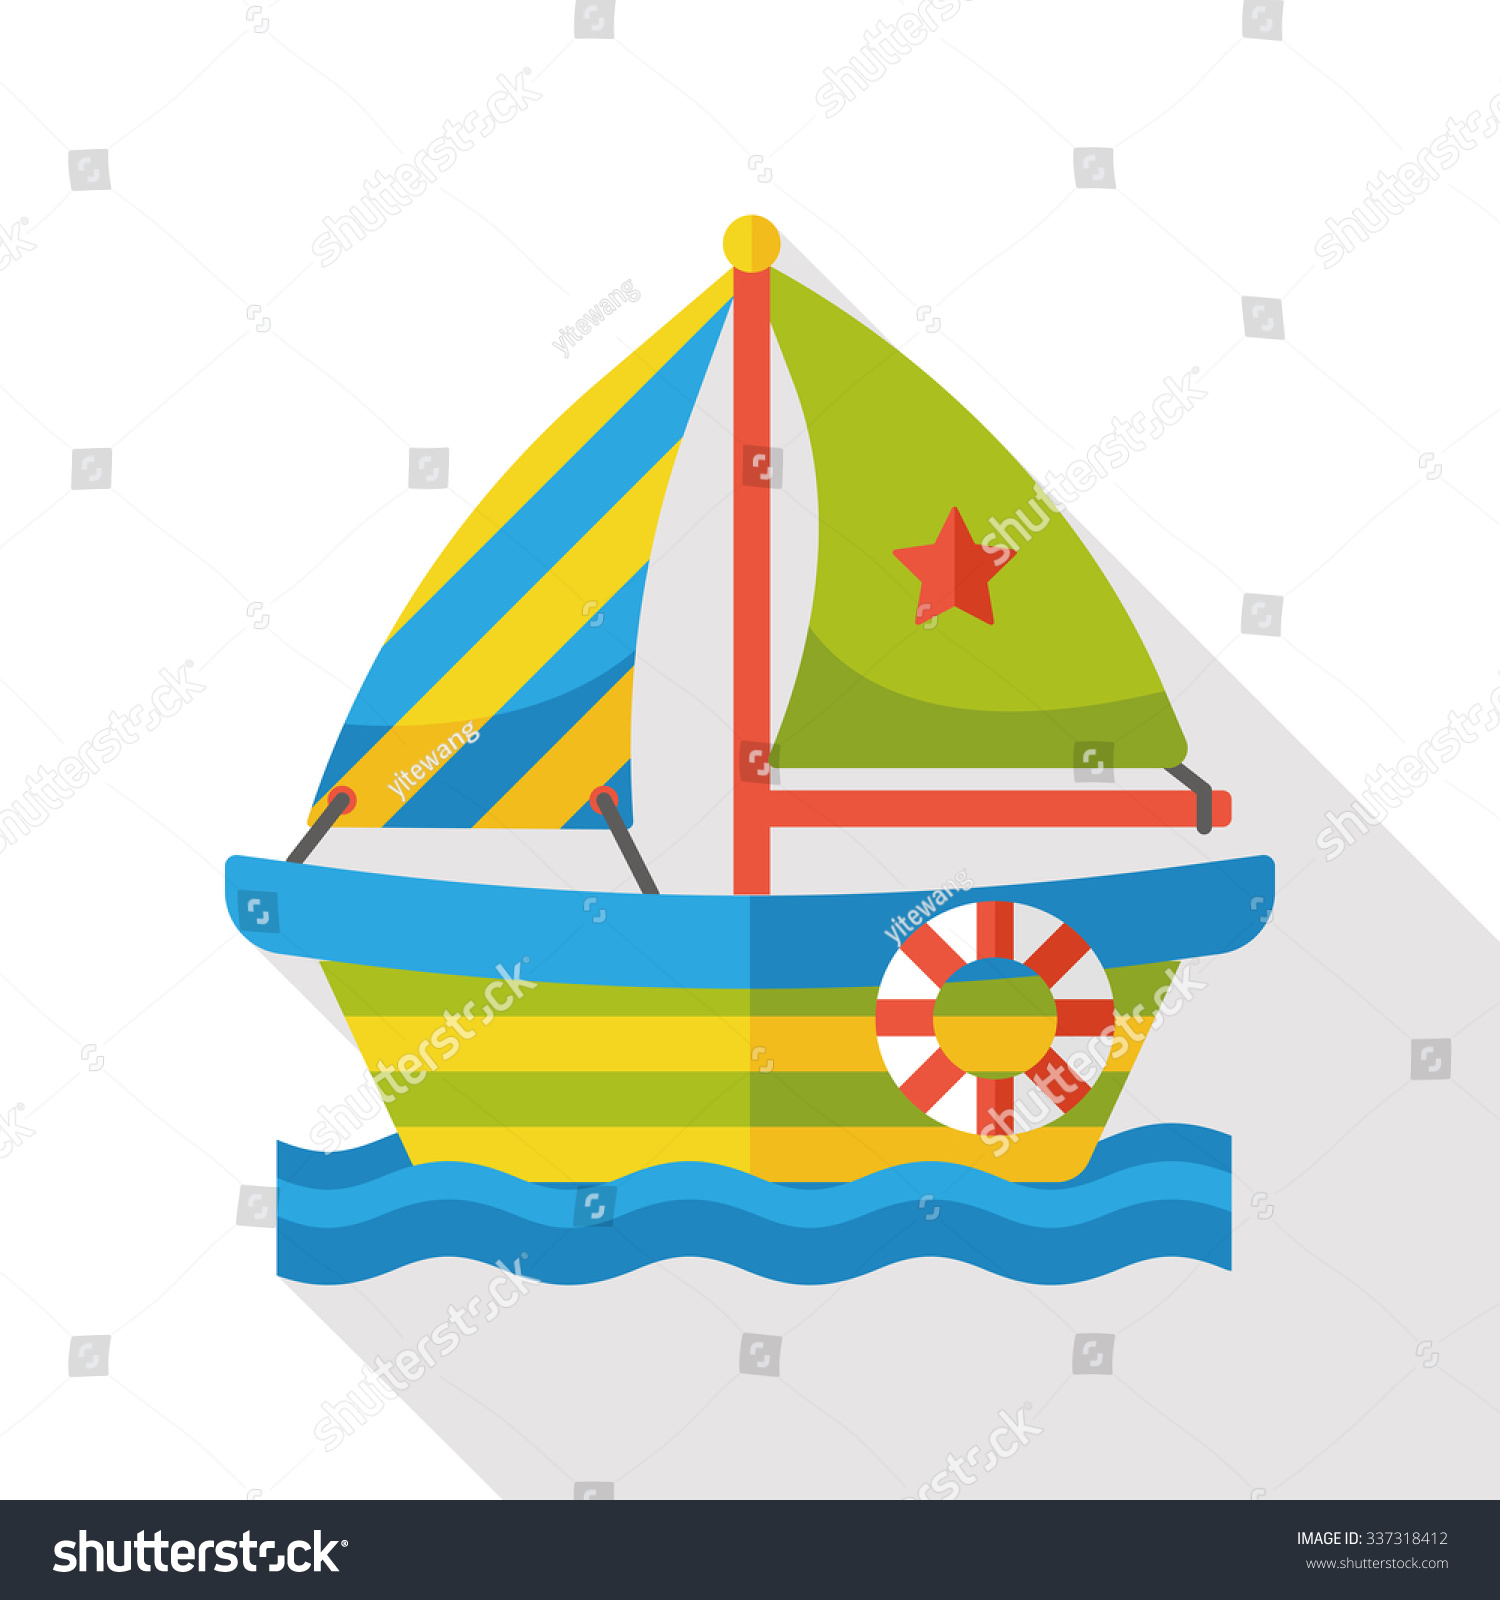 Fishing boat icon png